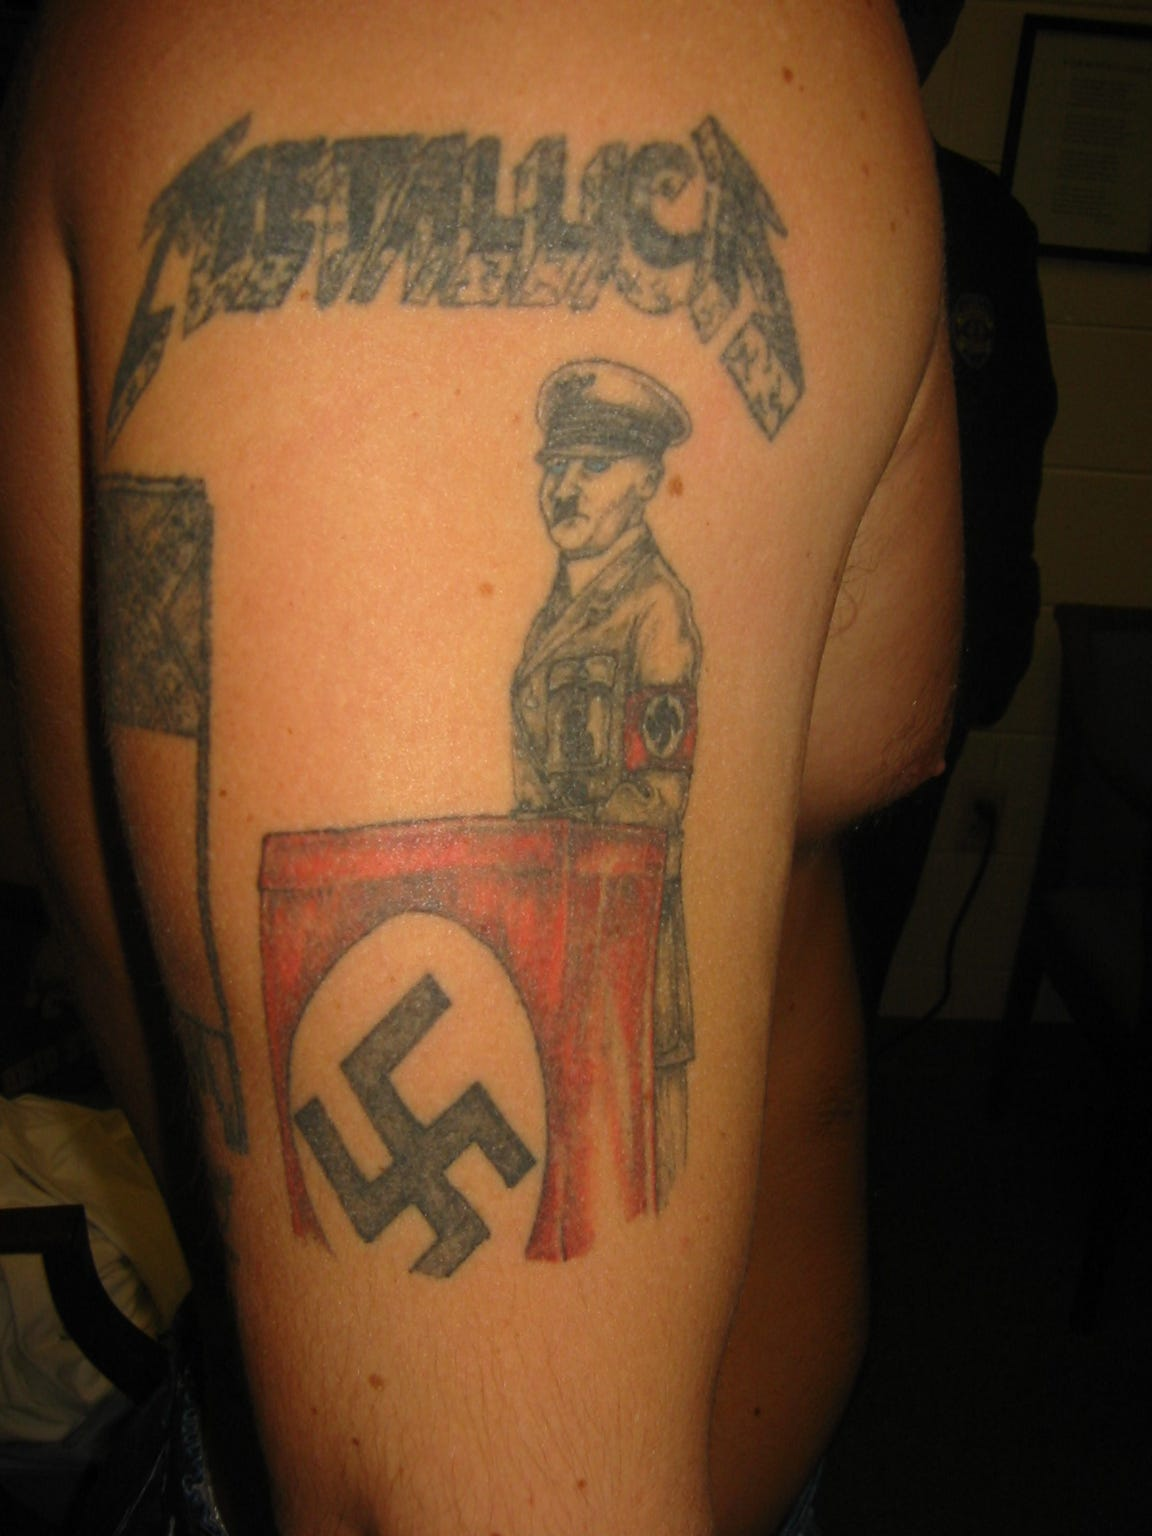 Adolph Hitler is displayed on an inmate's arm.